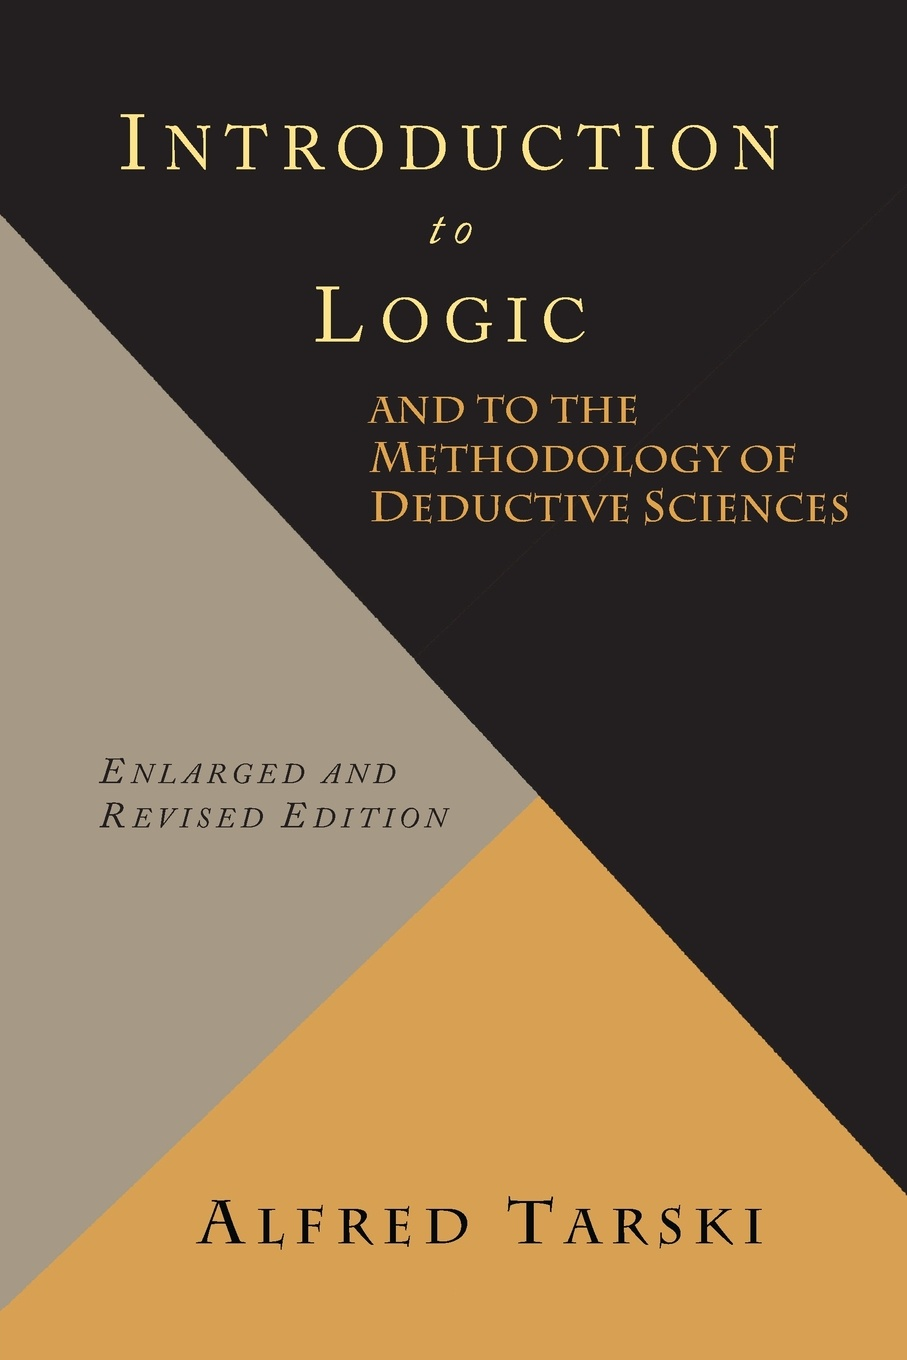 Alfred Tarski, Olaf Helmer-Hirschberg Introduction to Logic and the Methodology of Deductive Sciences